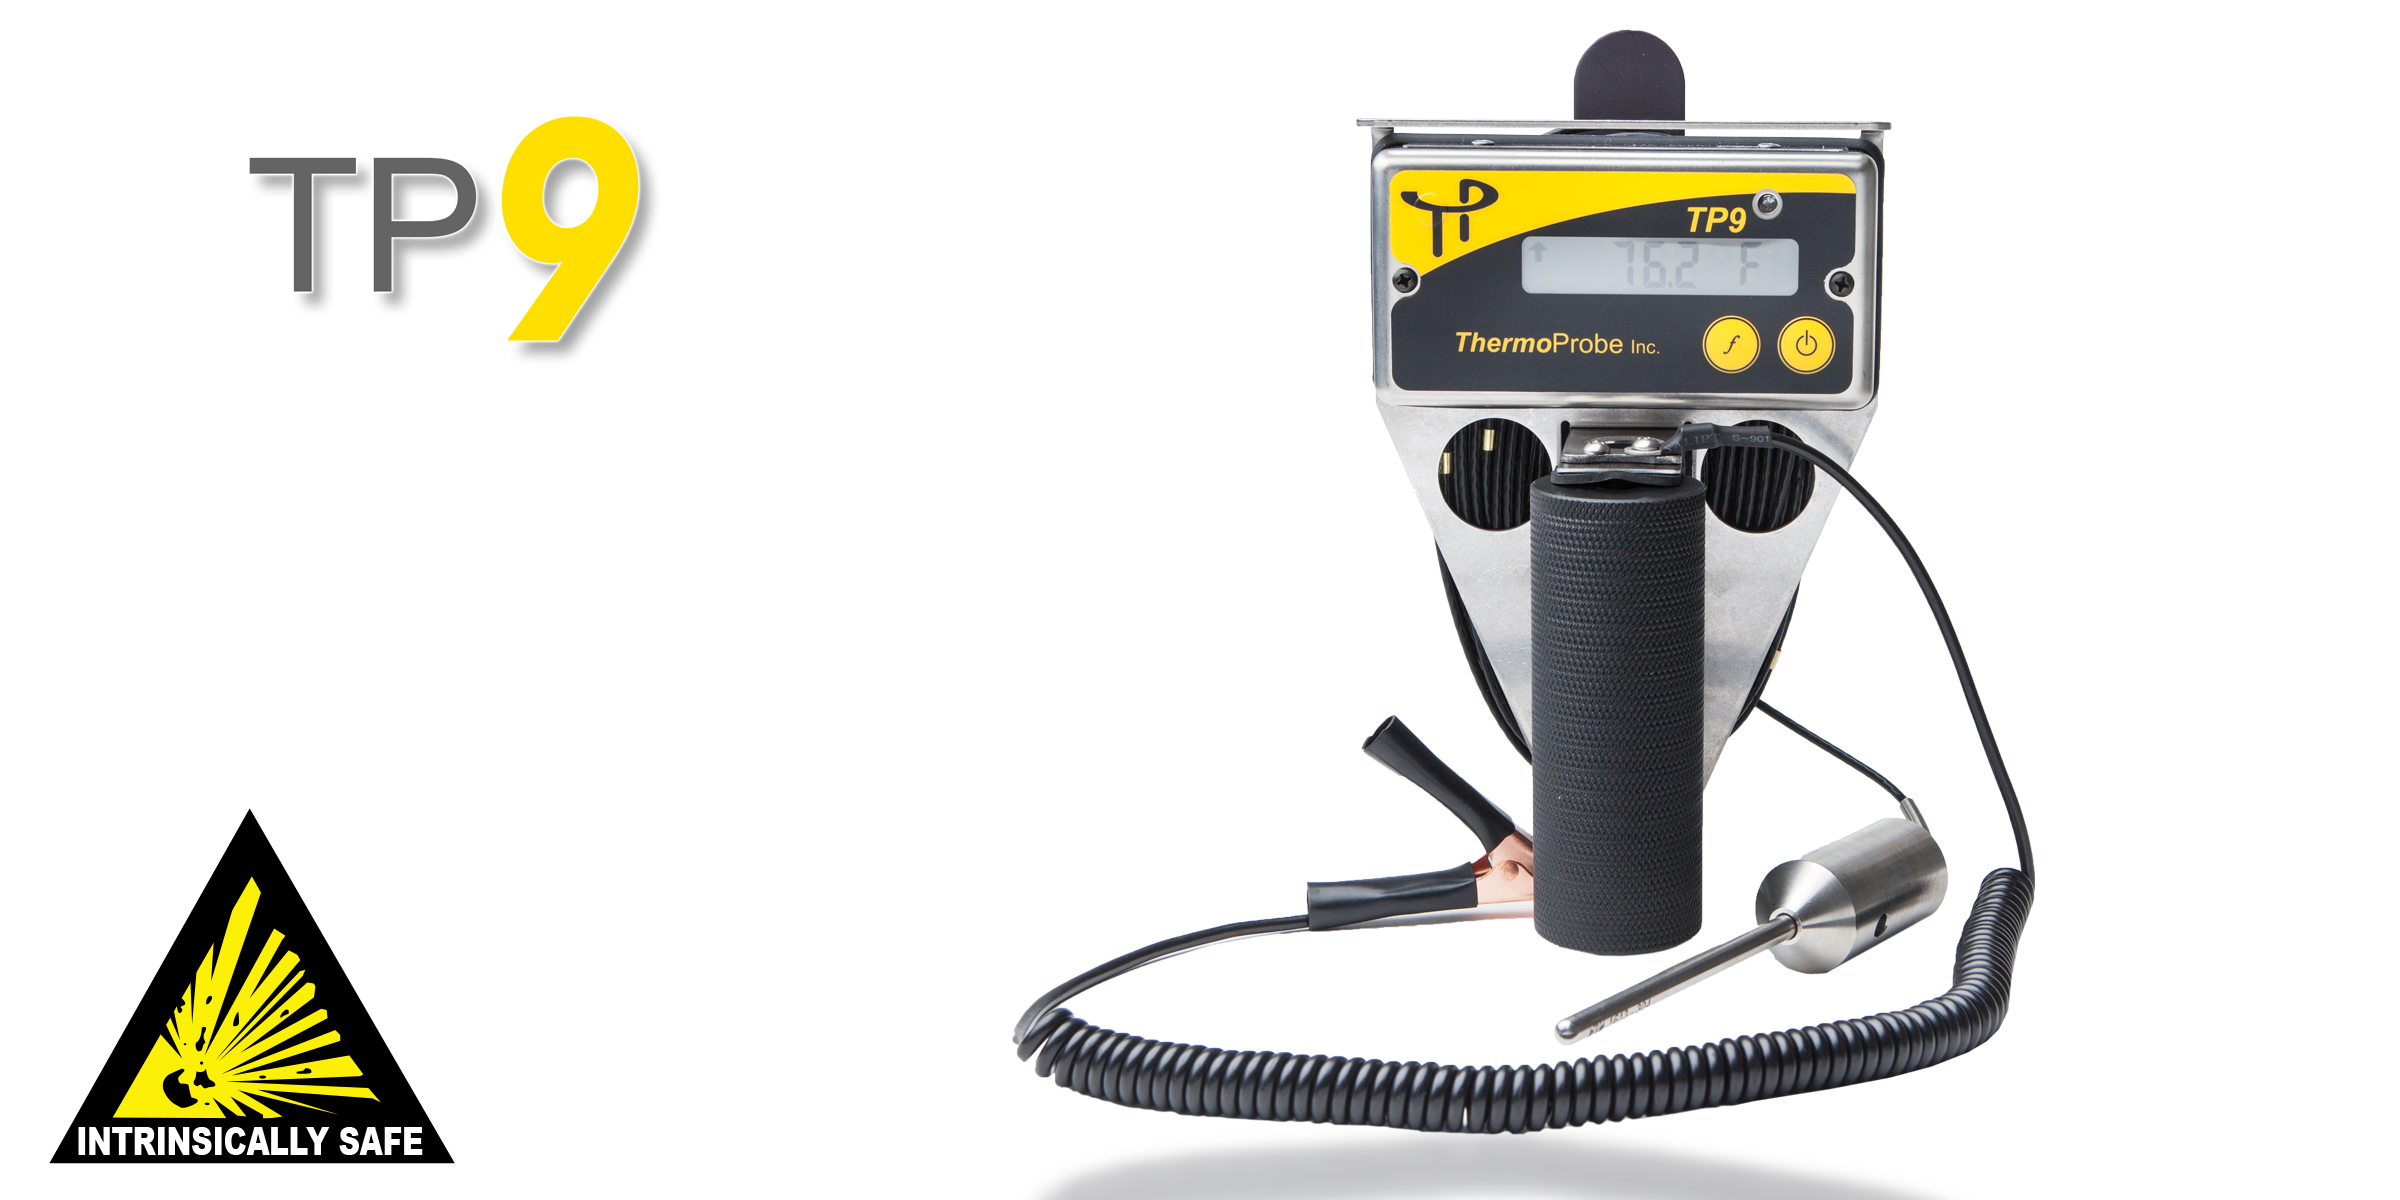 Features for the ThermoProbe TP9